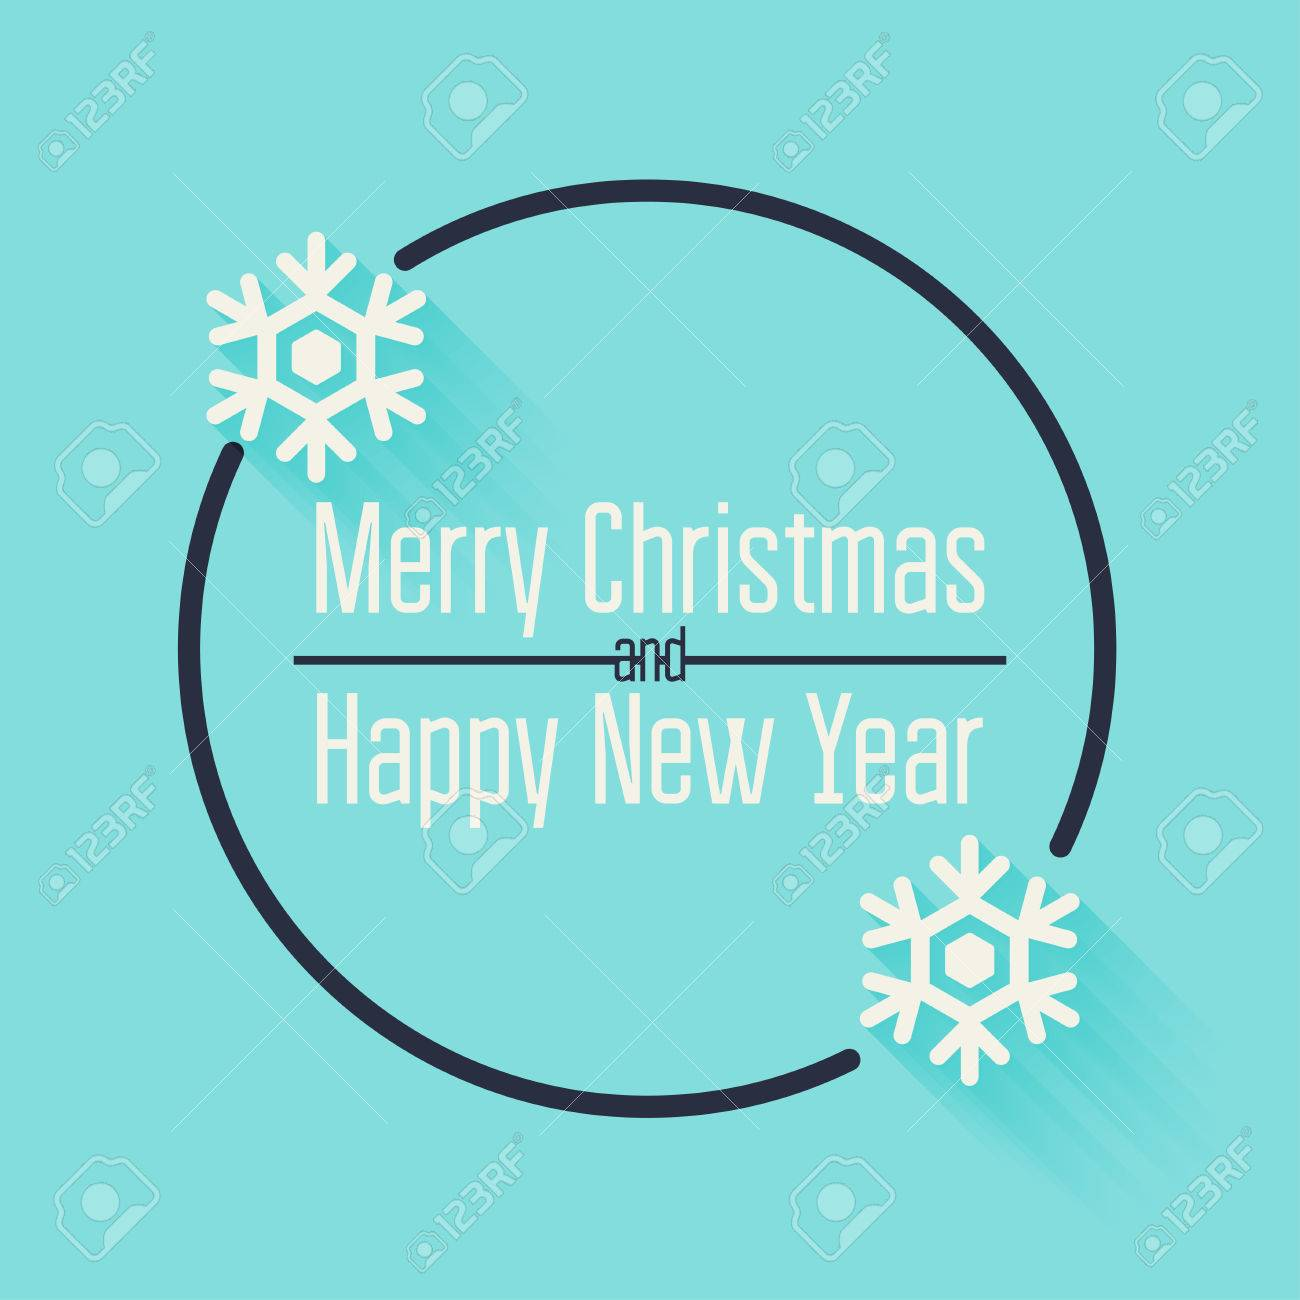 merry christmas and happy new year greeting card quote blank template stock vector